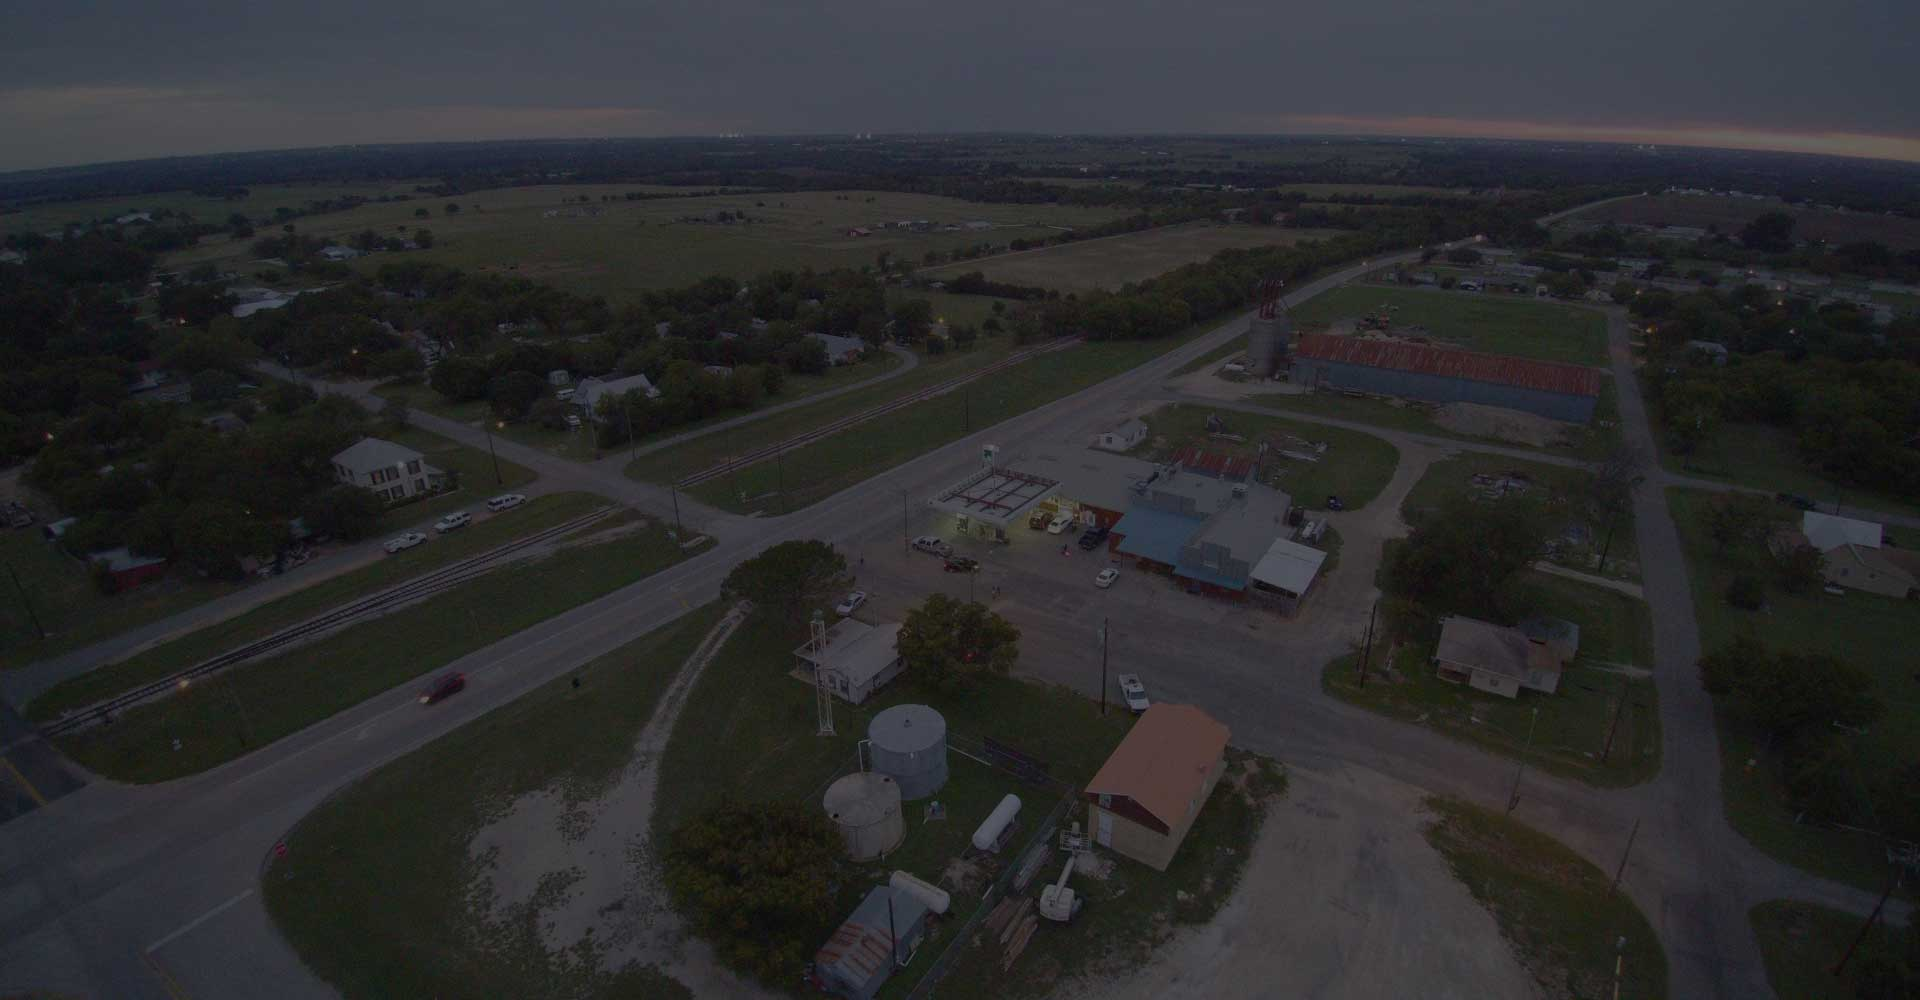 overhead view of the town of Weir, TX